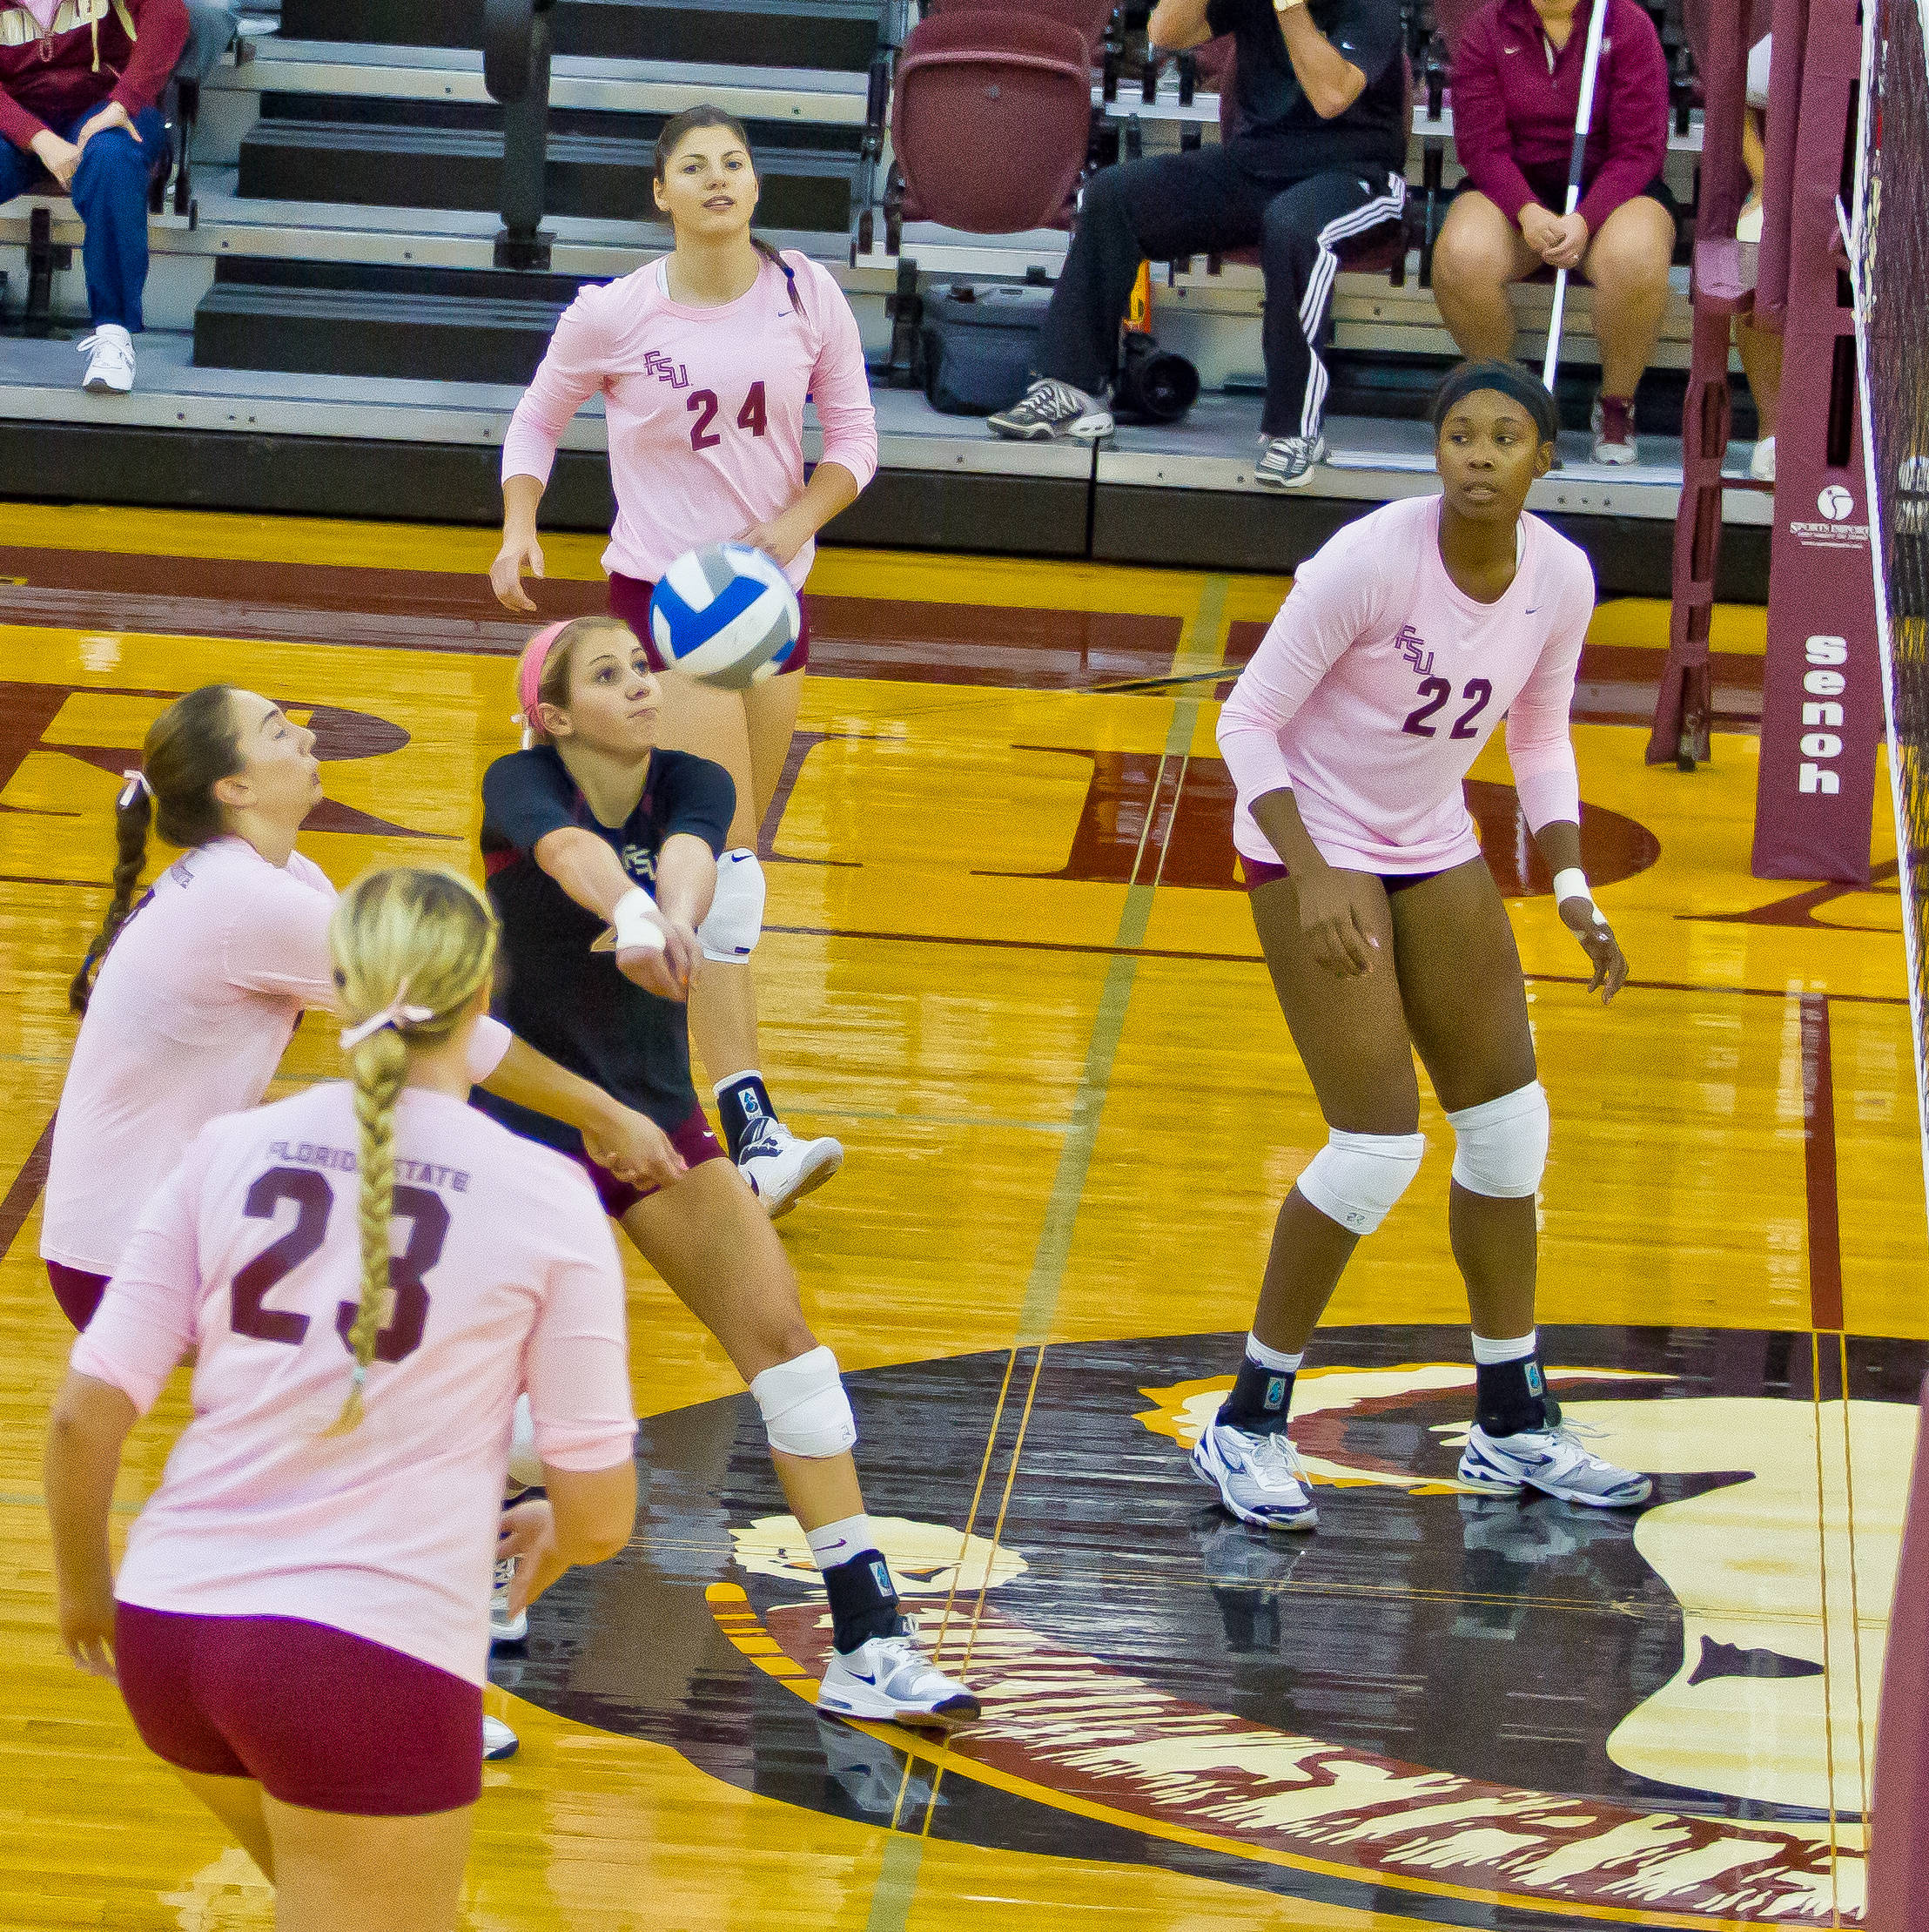 Katie Mosher (2) makes the play surrounded by Sareea Freeman (22), Elise Walch (23), Olivera Medic (24), and Fatma Yildirim (7).